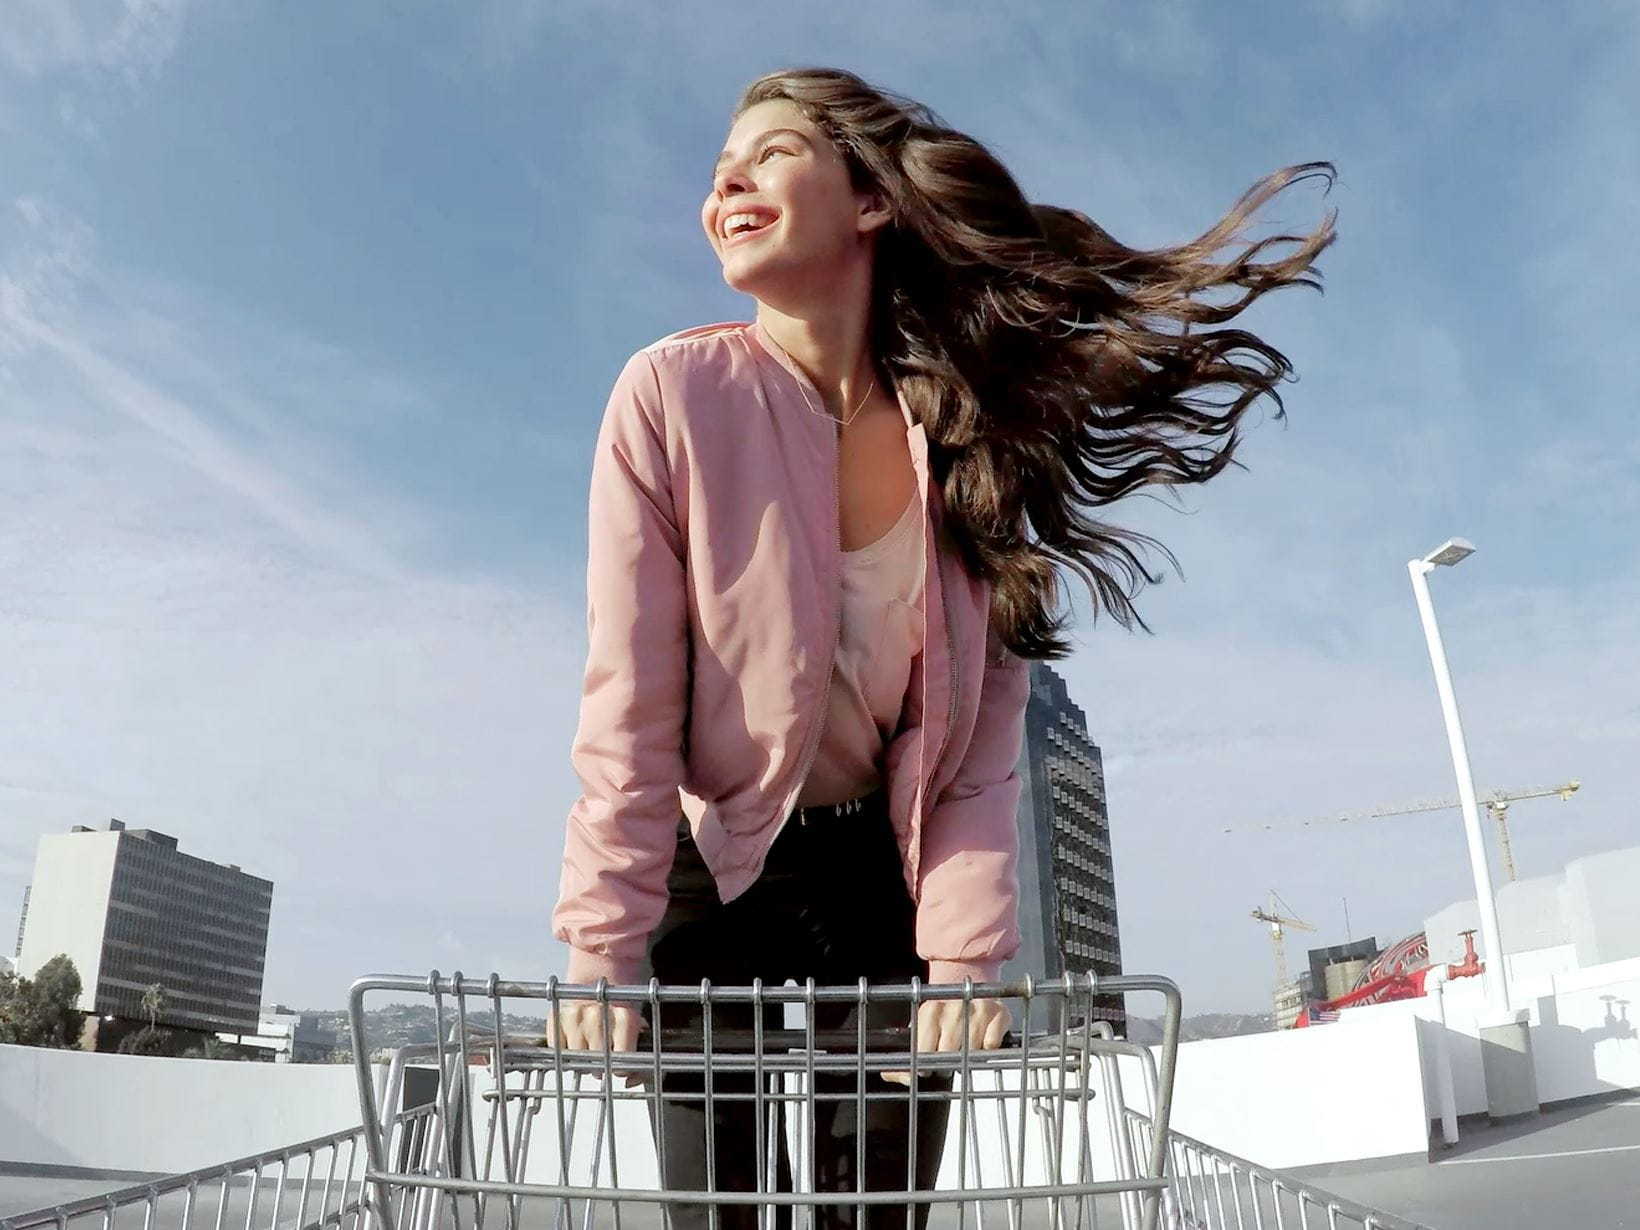 lady with long hair blowing in the wind